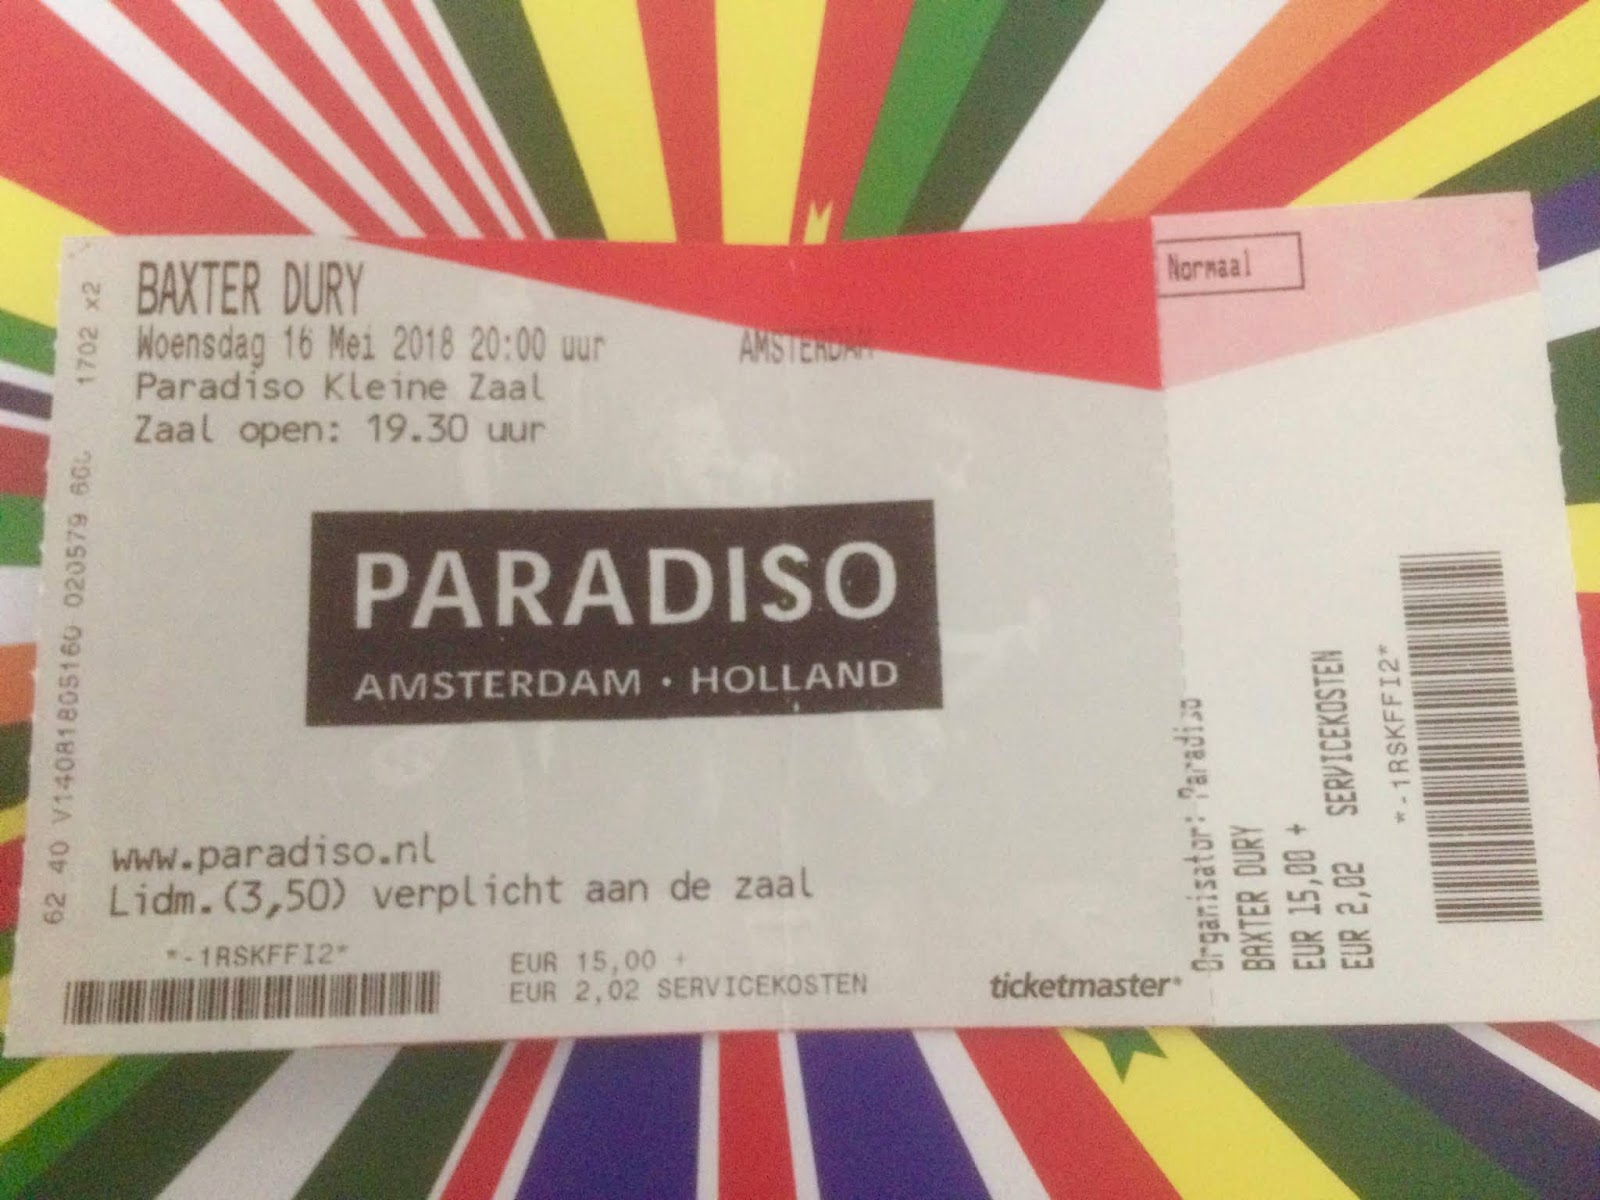 John medd halfway to paradiso what times he on the clue is on the ticket solutioingenieria Images